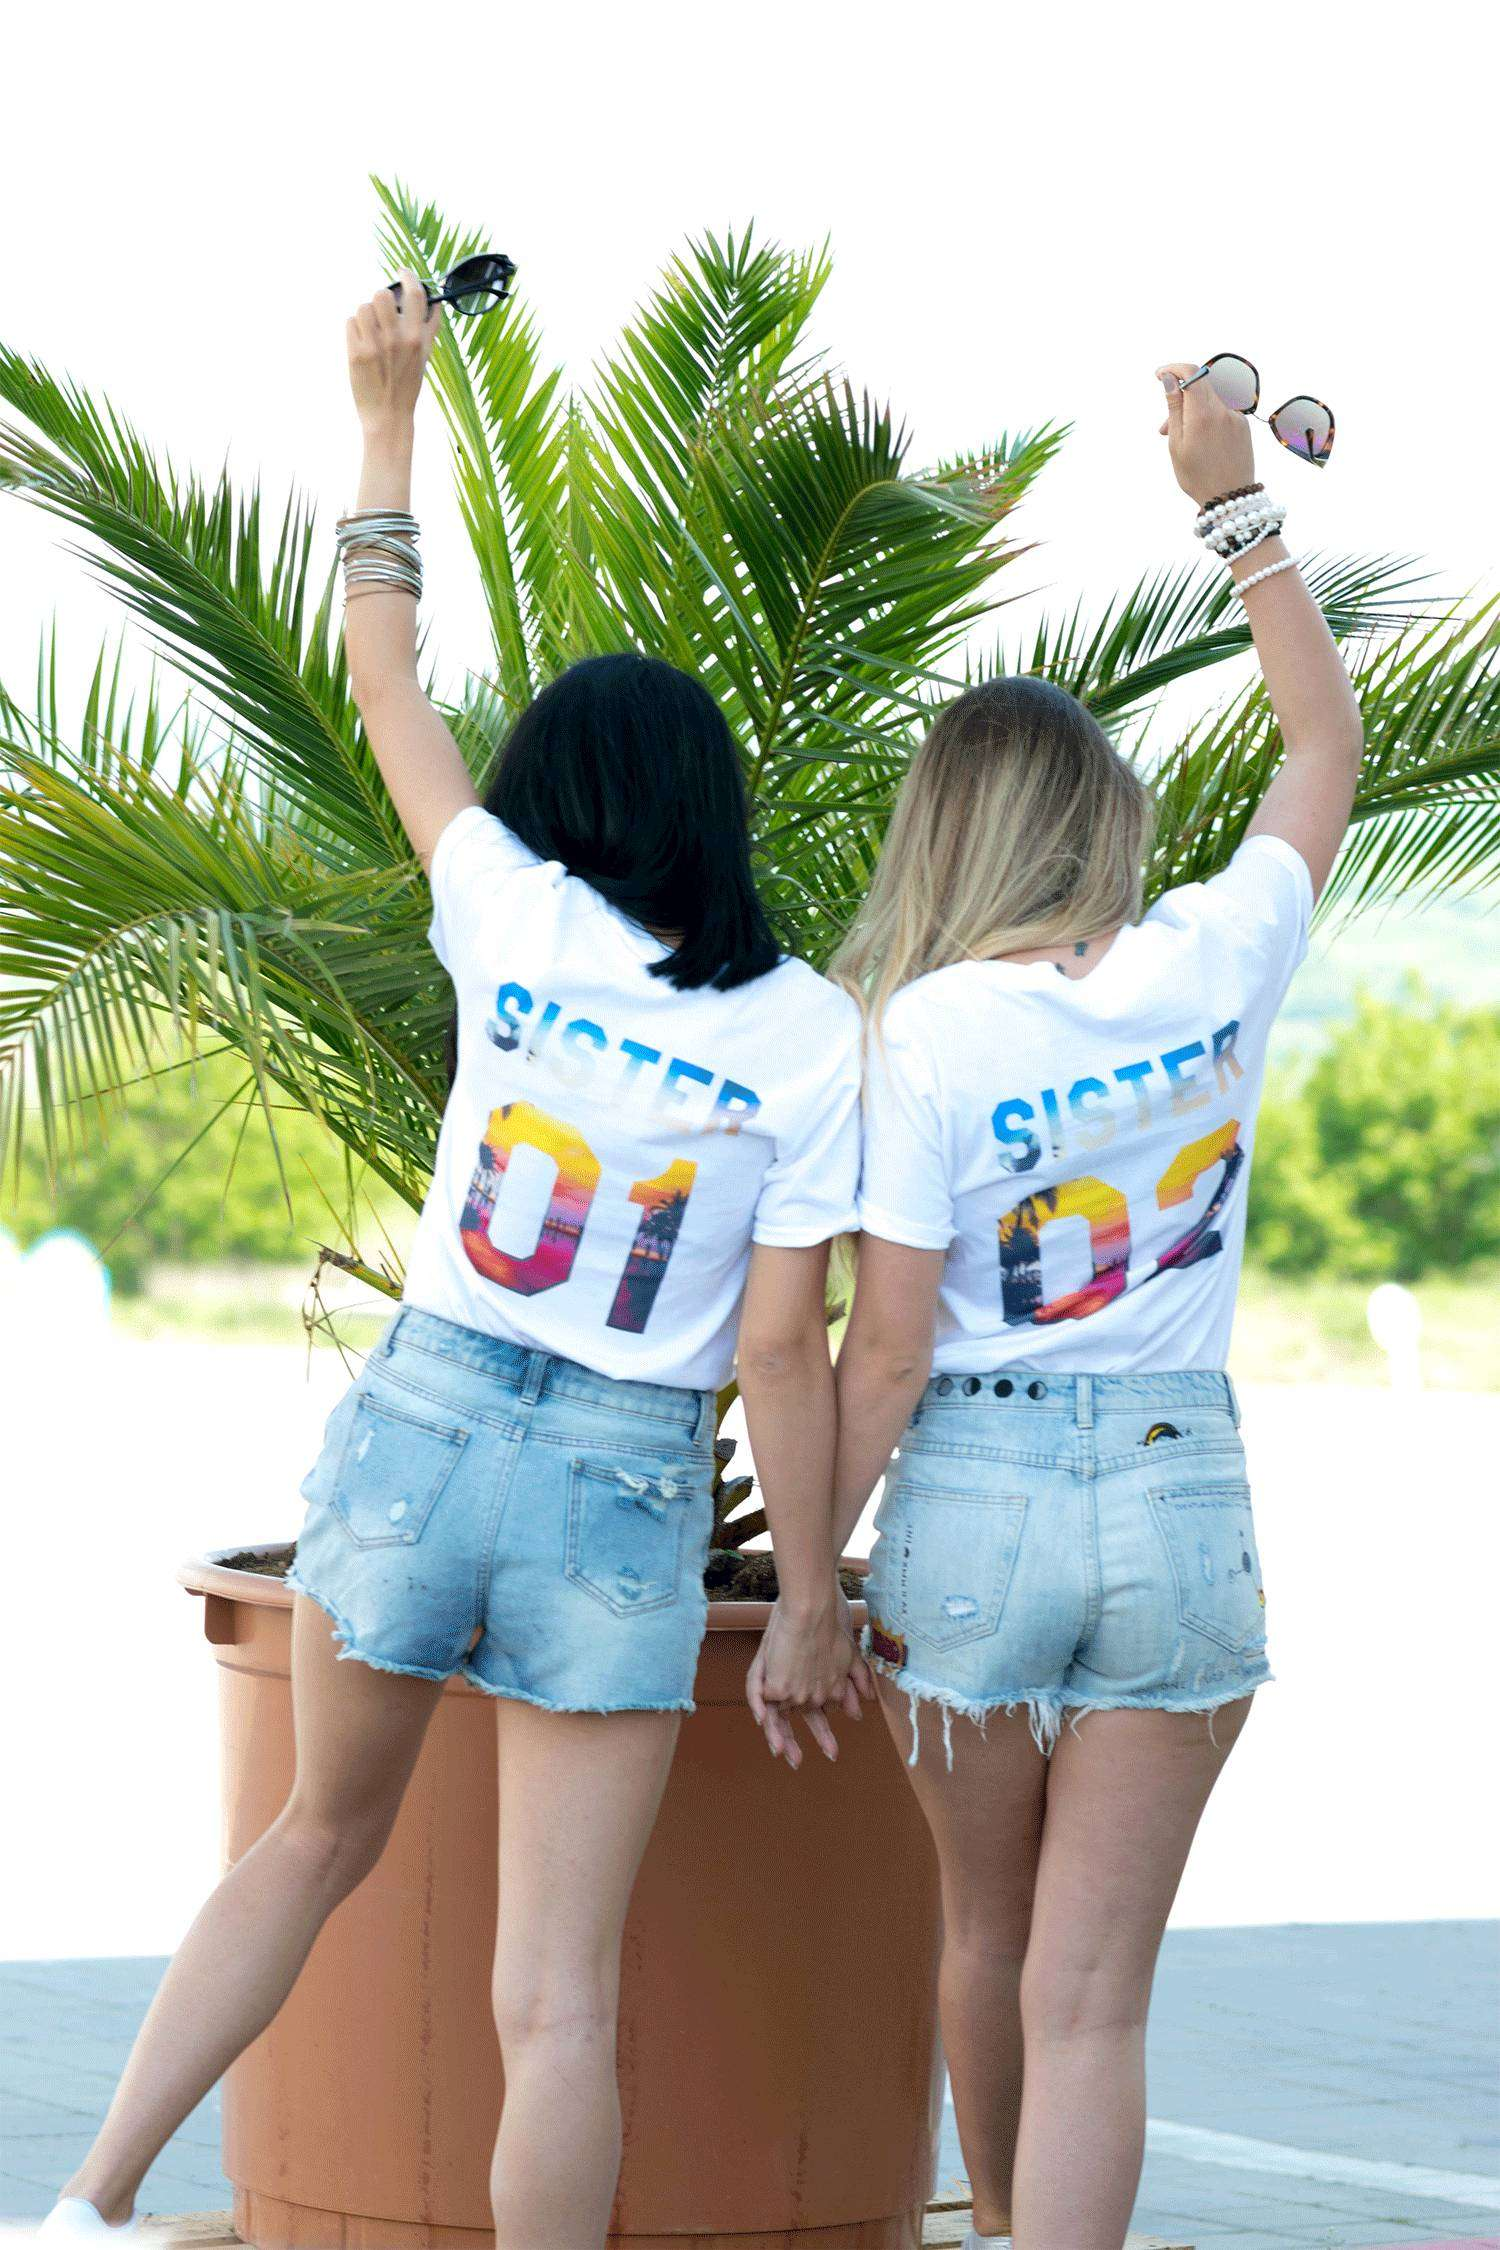 lookbook-3_0006_epic-tees-besties-light-retouch-0386